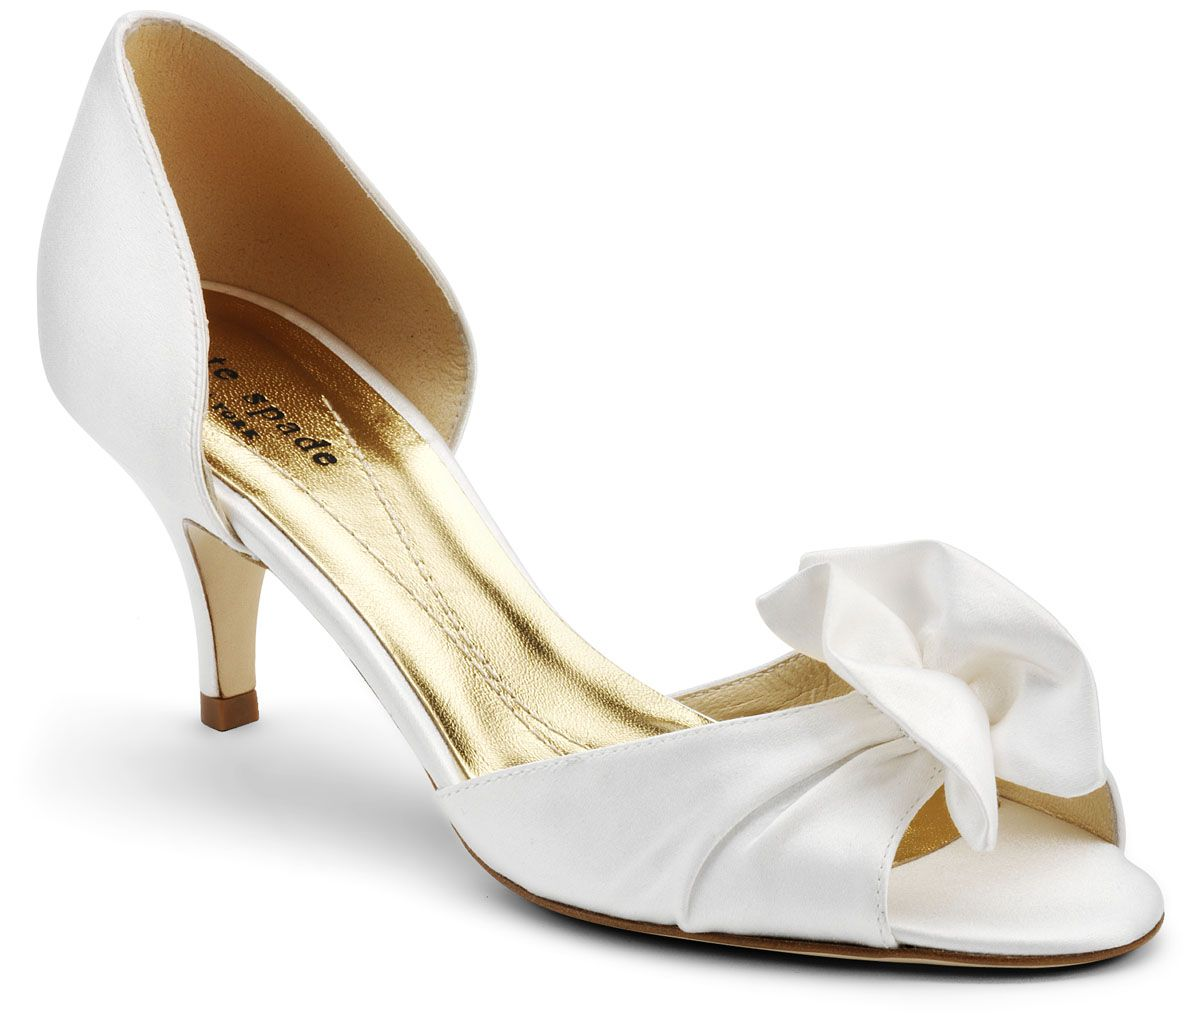 "White Kate Spade Evie Bridal Shoes $245.00 $295.00 ""This"